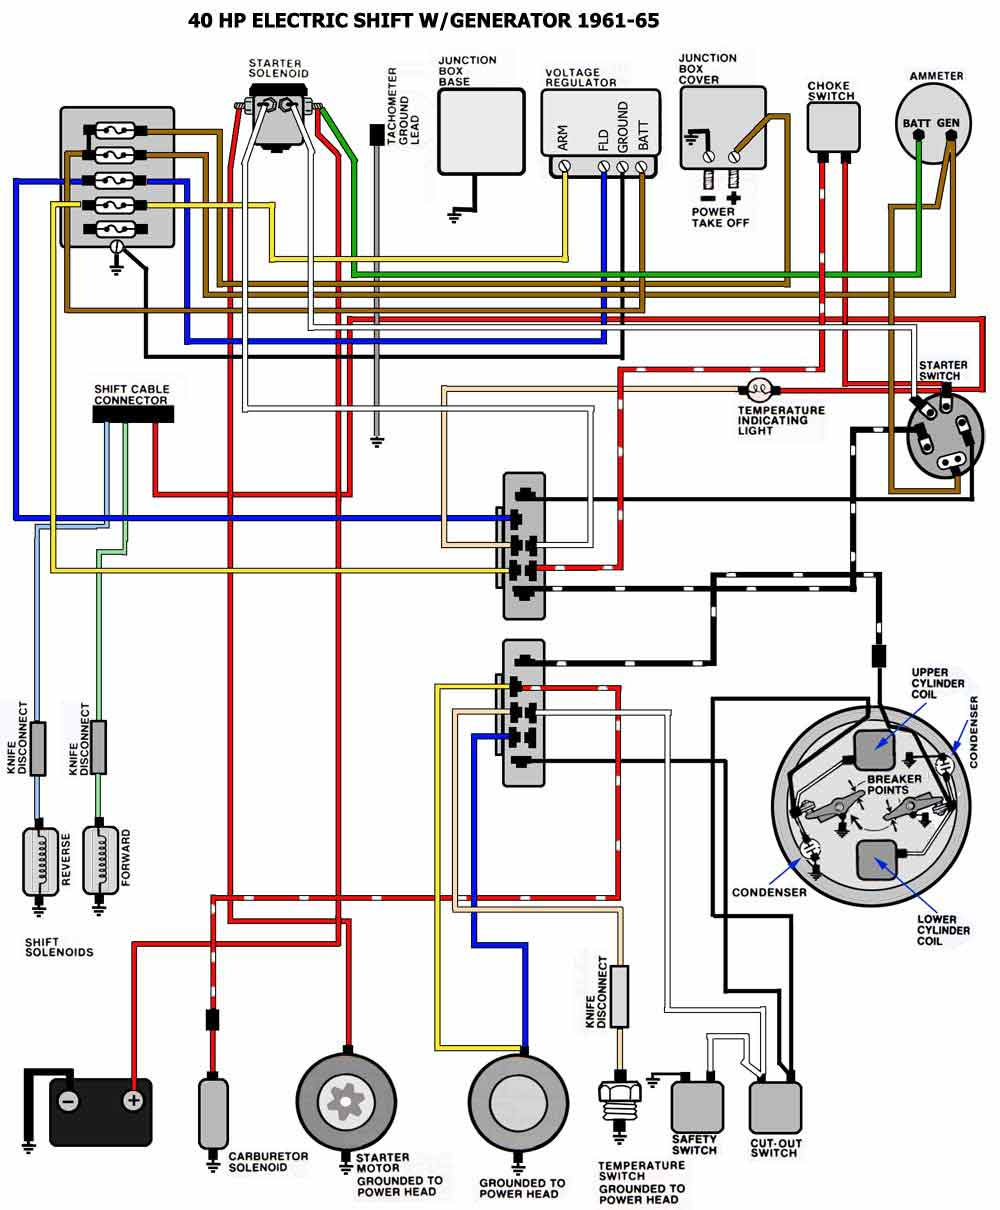 61_66_40HP hp schematic diagram on wiring diagram